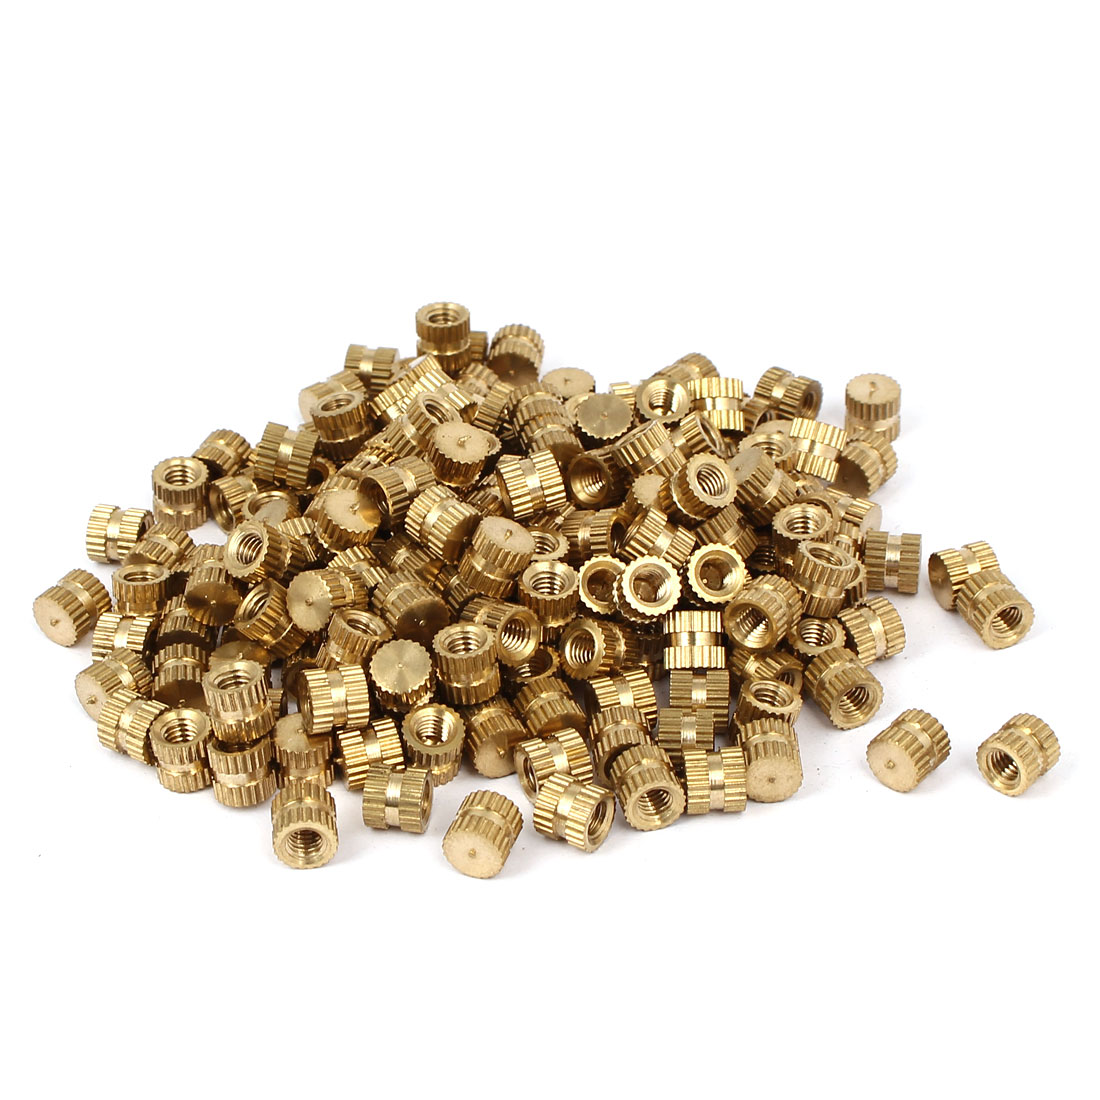 M4 x 6mm 6.3mm OD Brass Threaded Insert Embedment Knurled Thumb Nut 200PCS